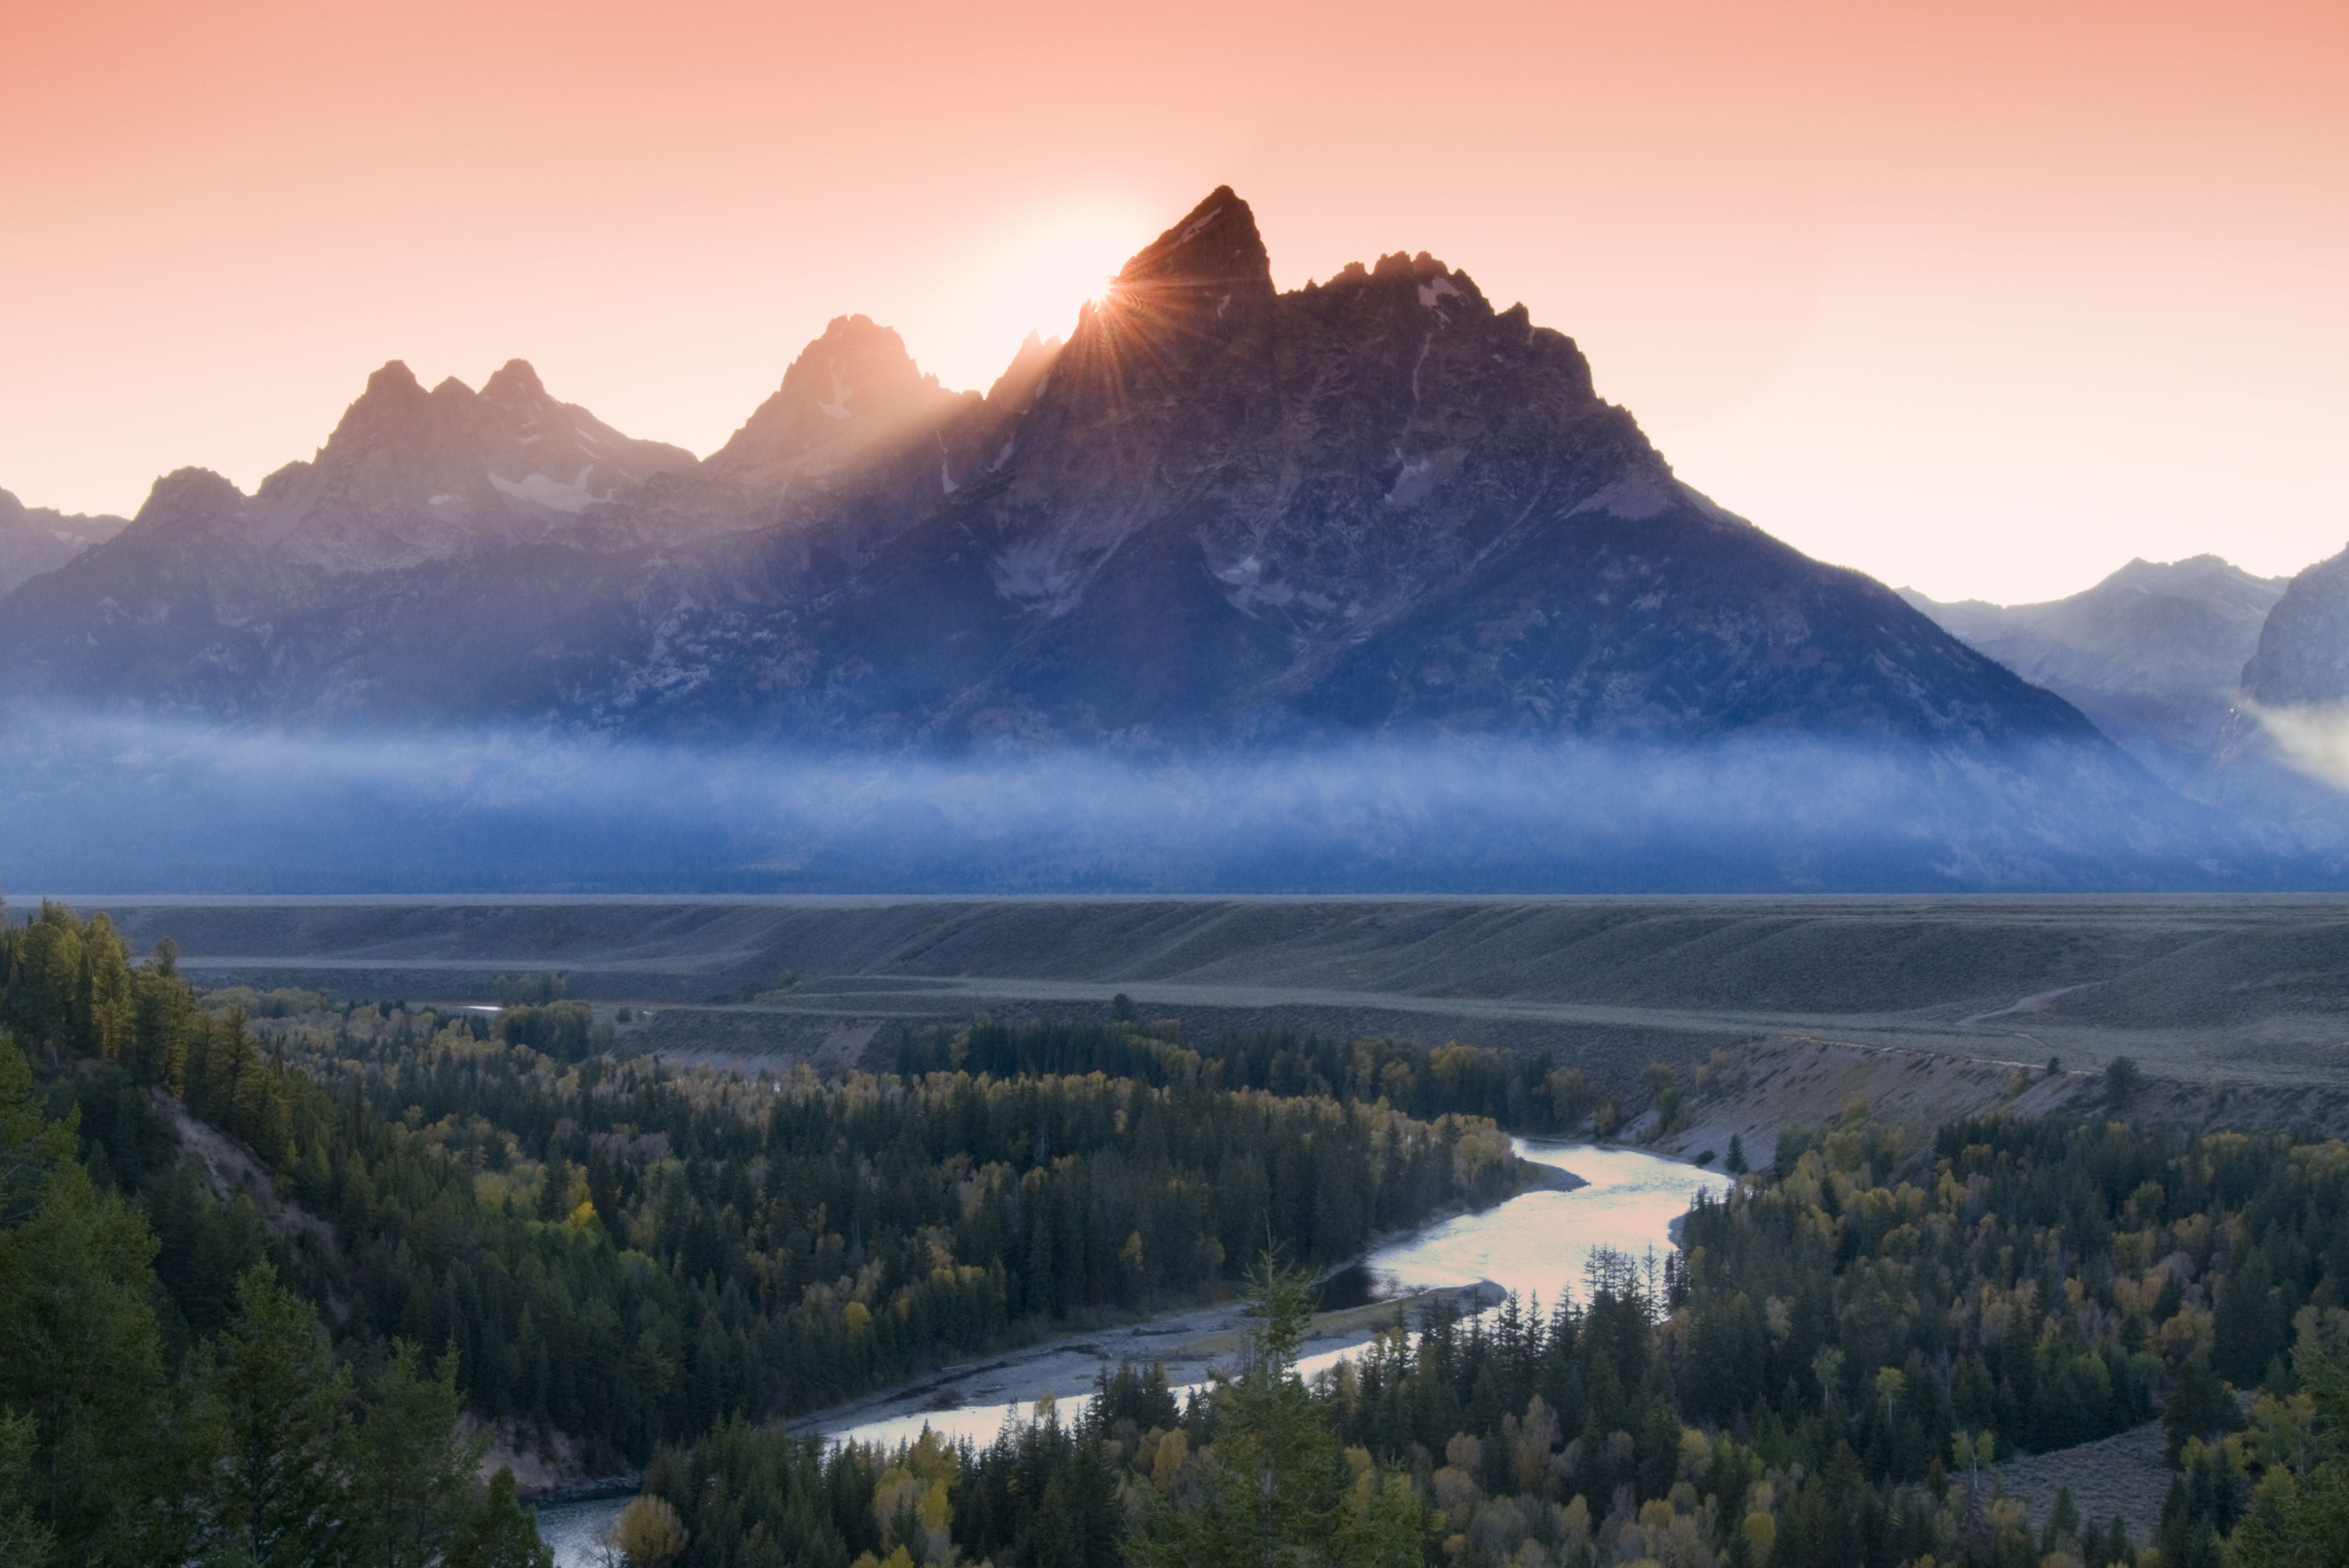 S And B Filters >> Overview of Wyoming's Grand Teton National Park